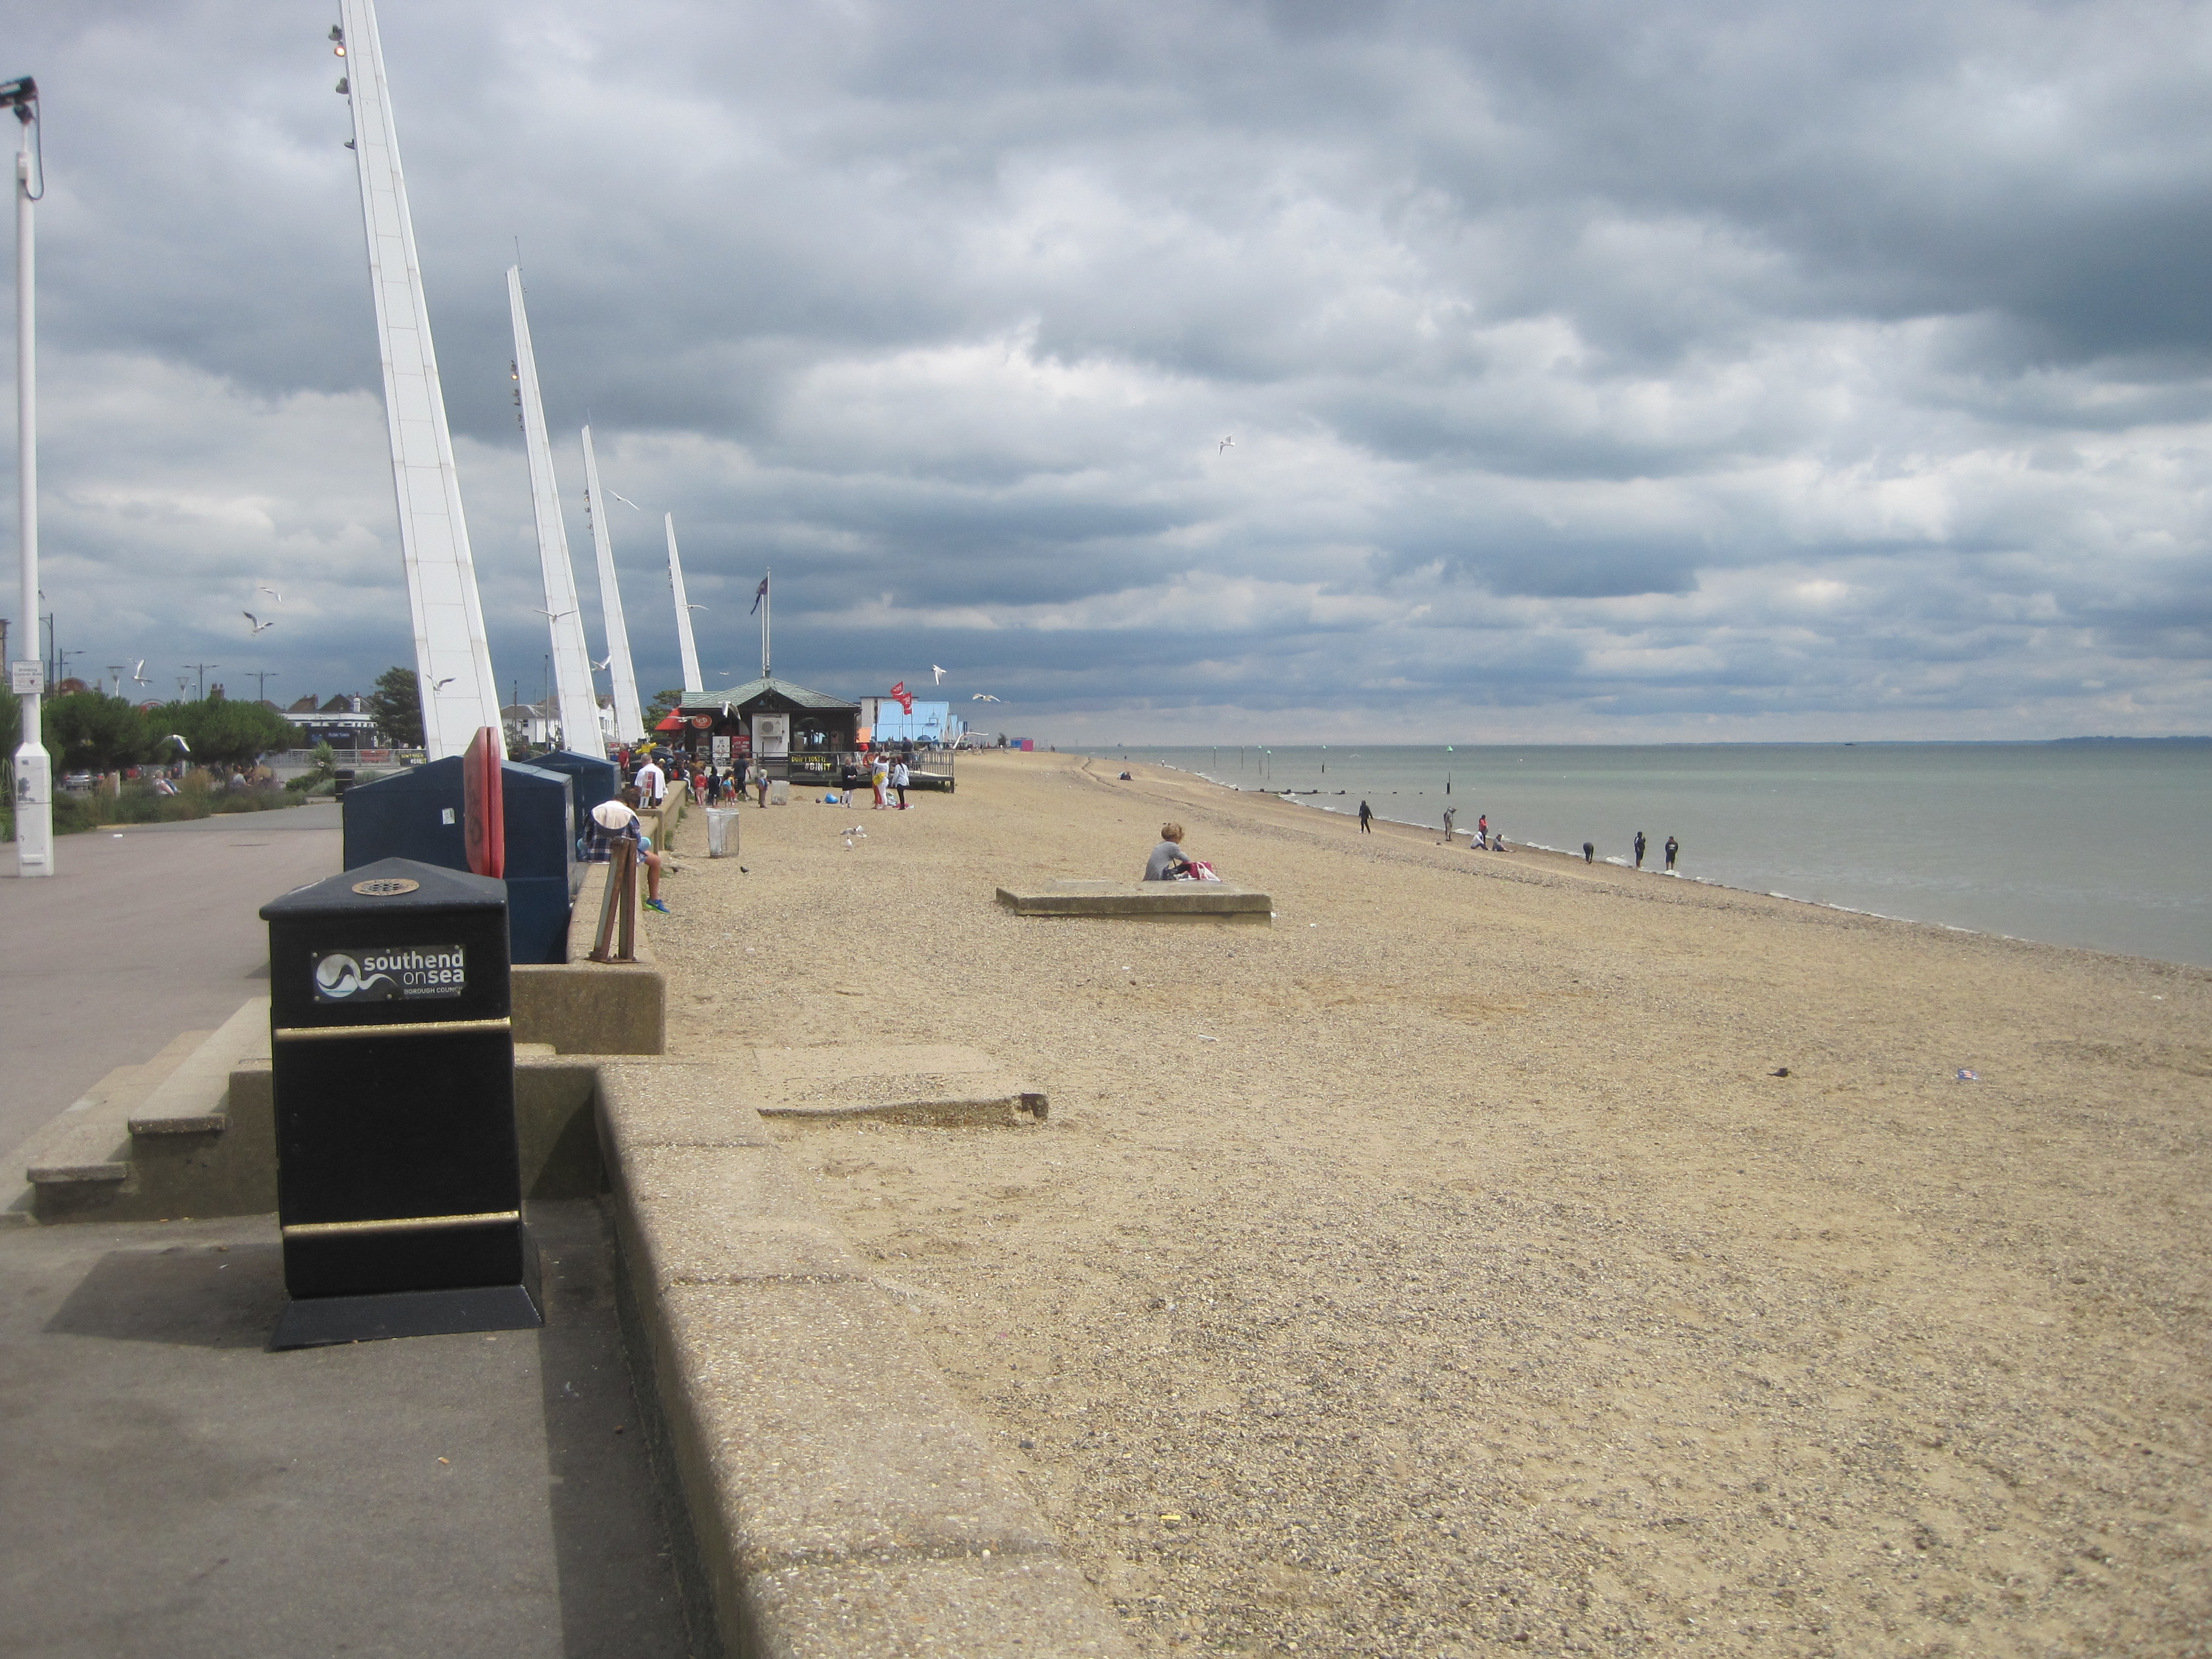 Southend Beach - photo by Juliamaud